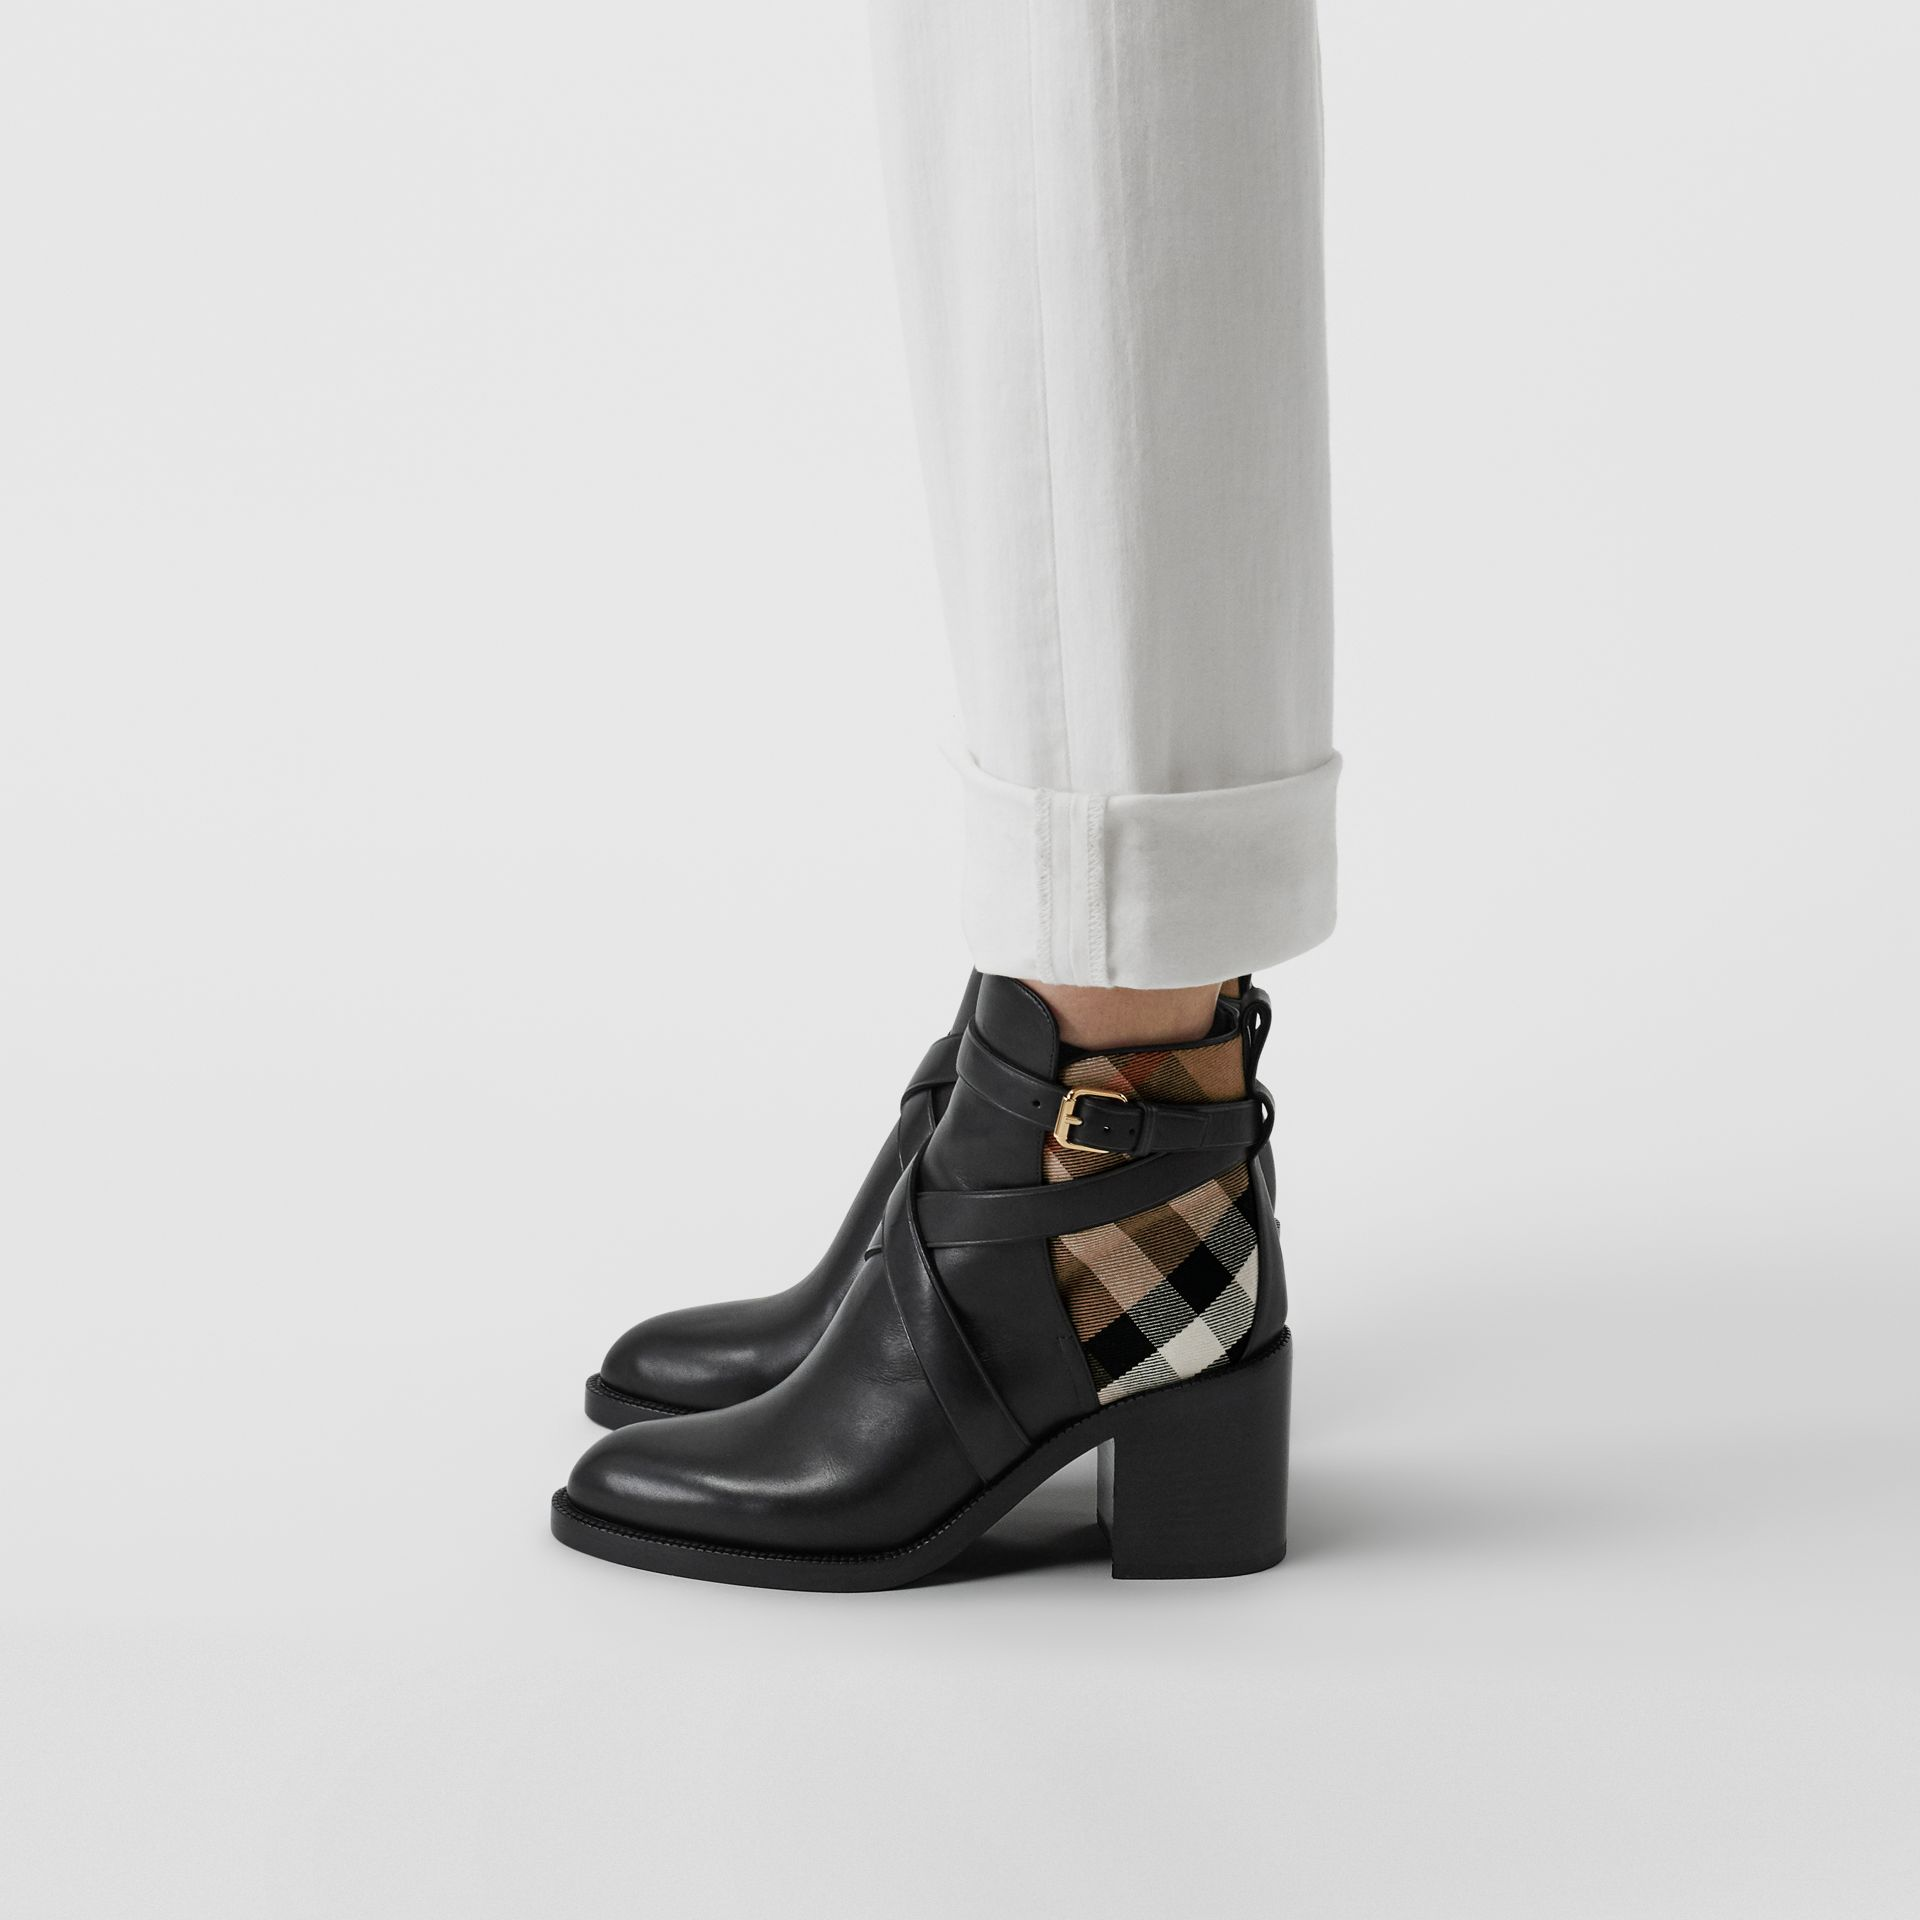 Bottines en cuir et coton House check (Noir) - Femme | Burberry - photo de la galerie 1